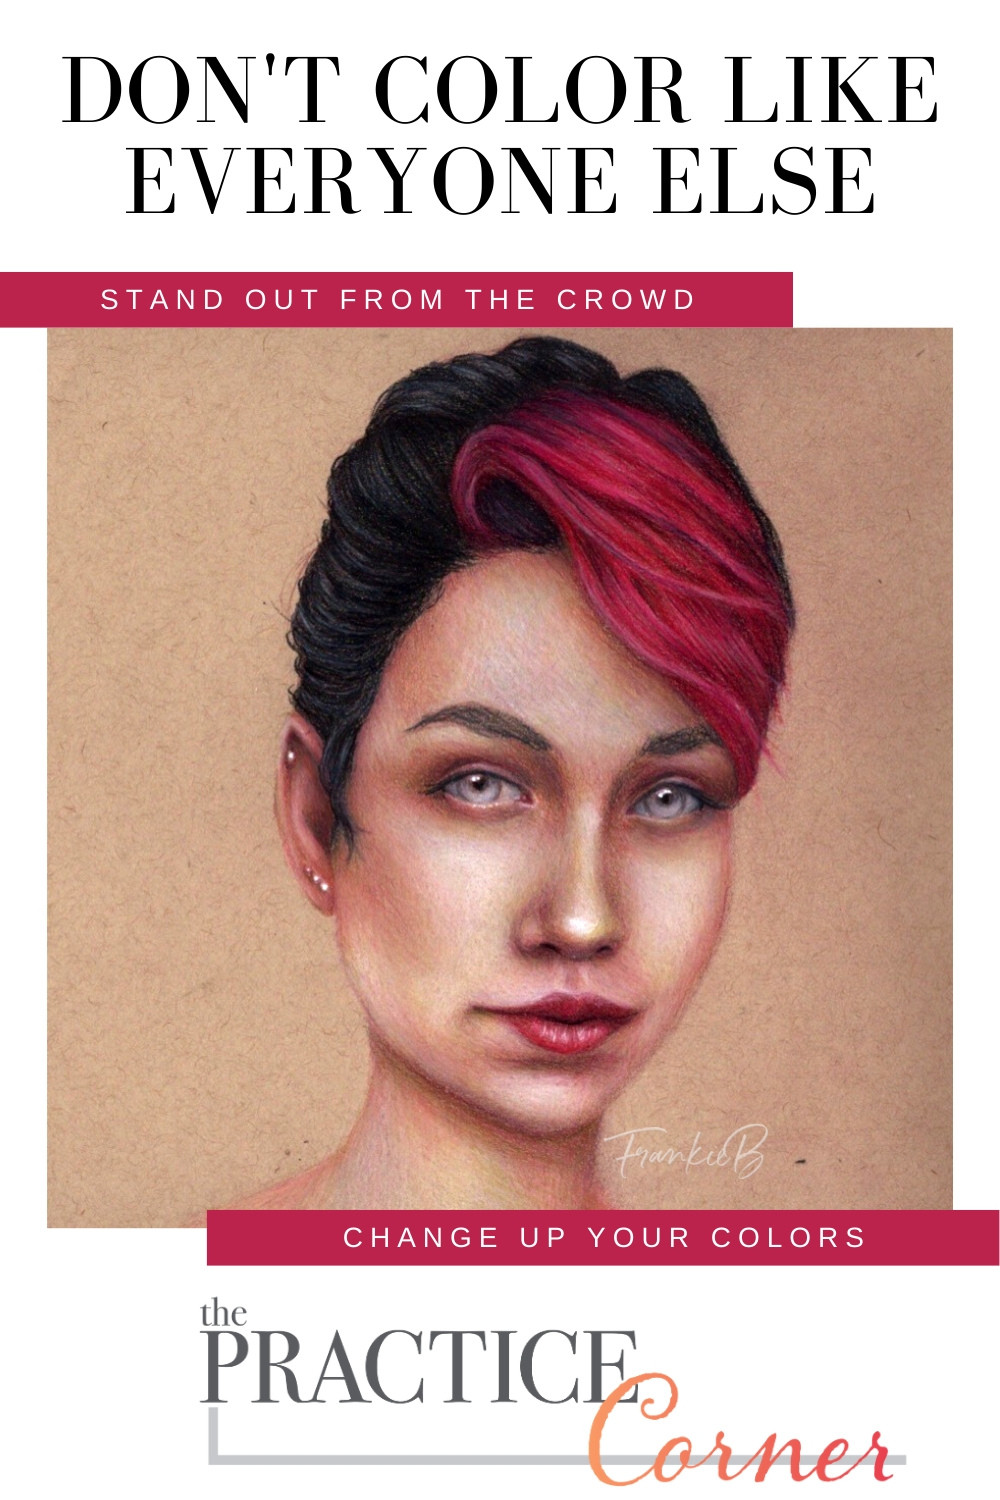 Make your coloring stand out from the crowd   Change the colors used in a project   #coloredpencil #coloredpencilpractice #thepracticecorner #realisticcoloring #coloringtips